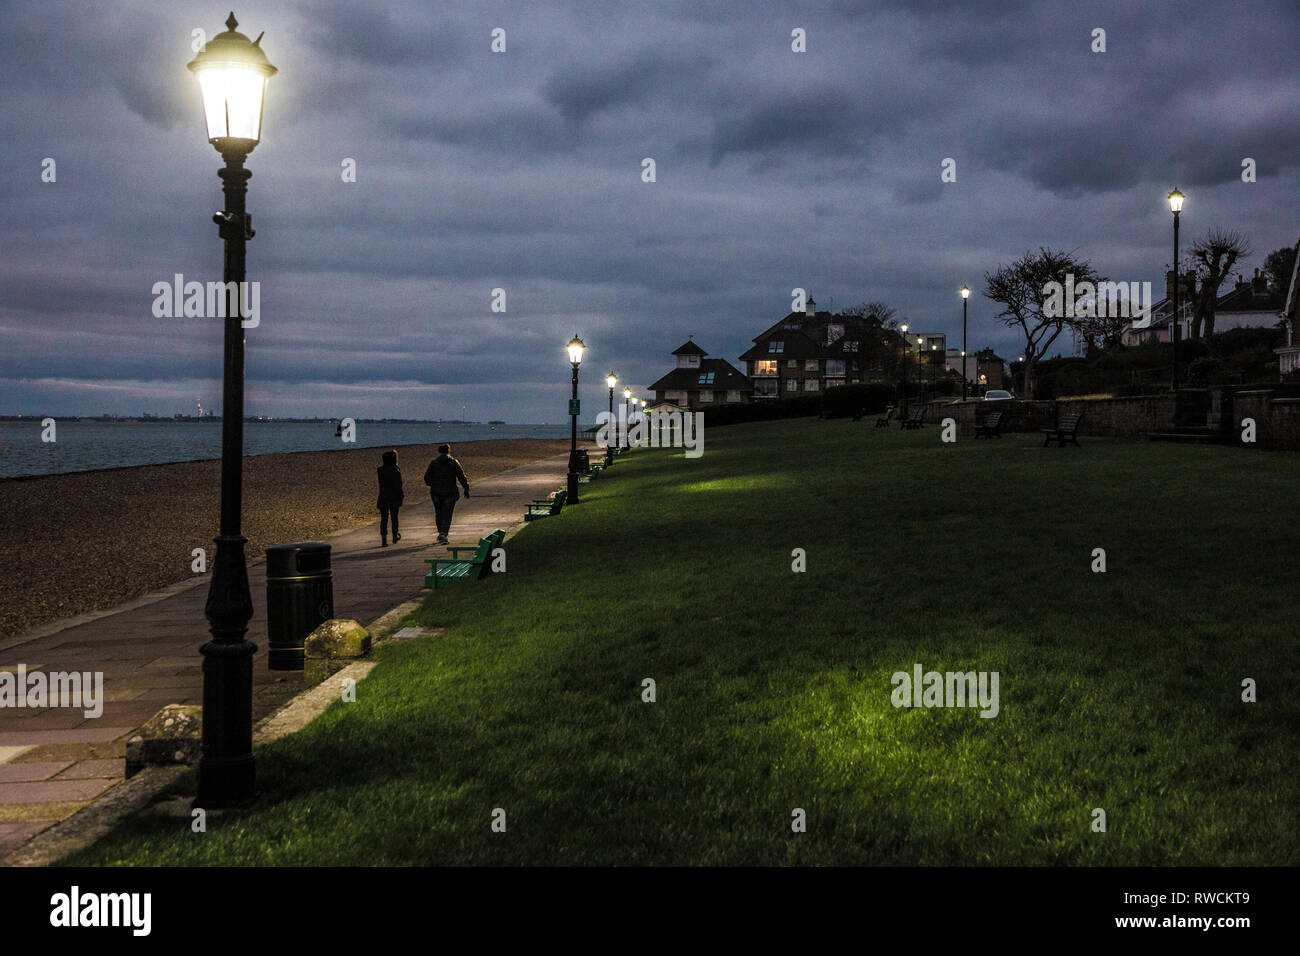 couple walking, along,seafront,the green, at dusk,coast,seafront, parade, street,lighting, new, low,power, LED, lighting, Cowes, Isle of Wight, - Stock Image